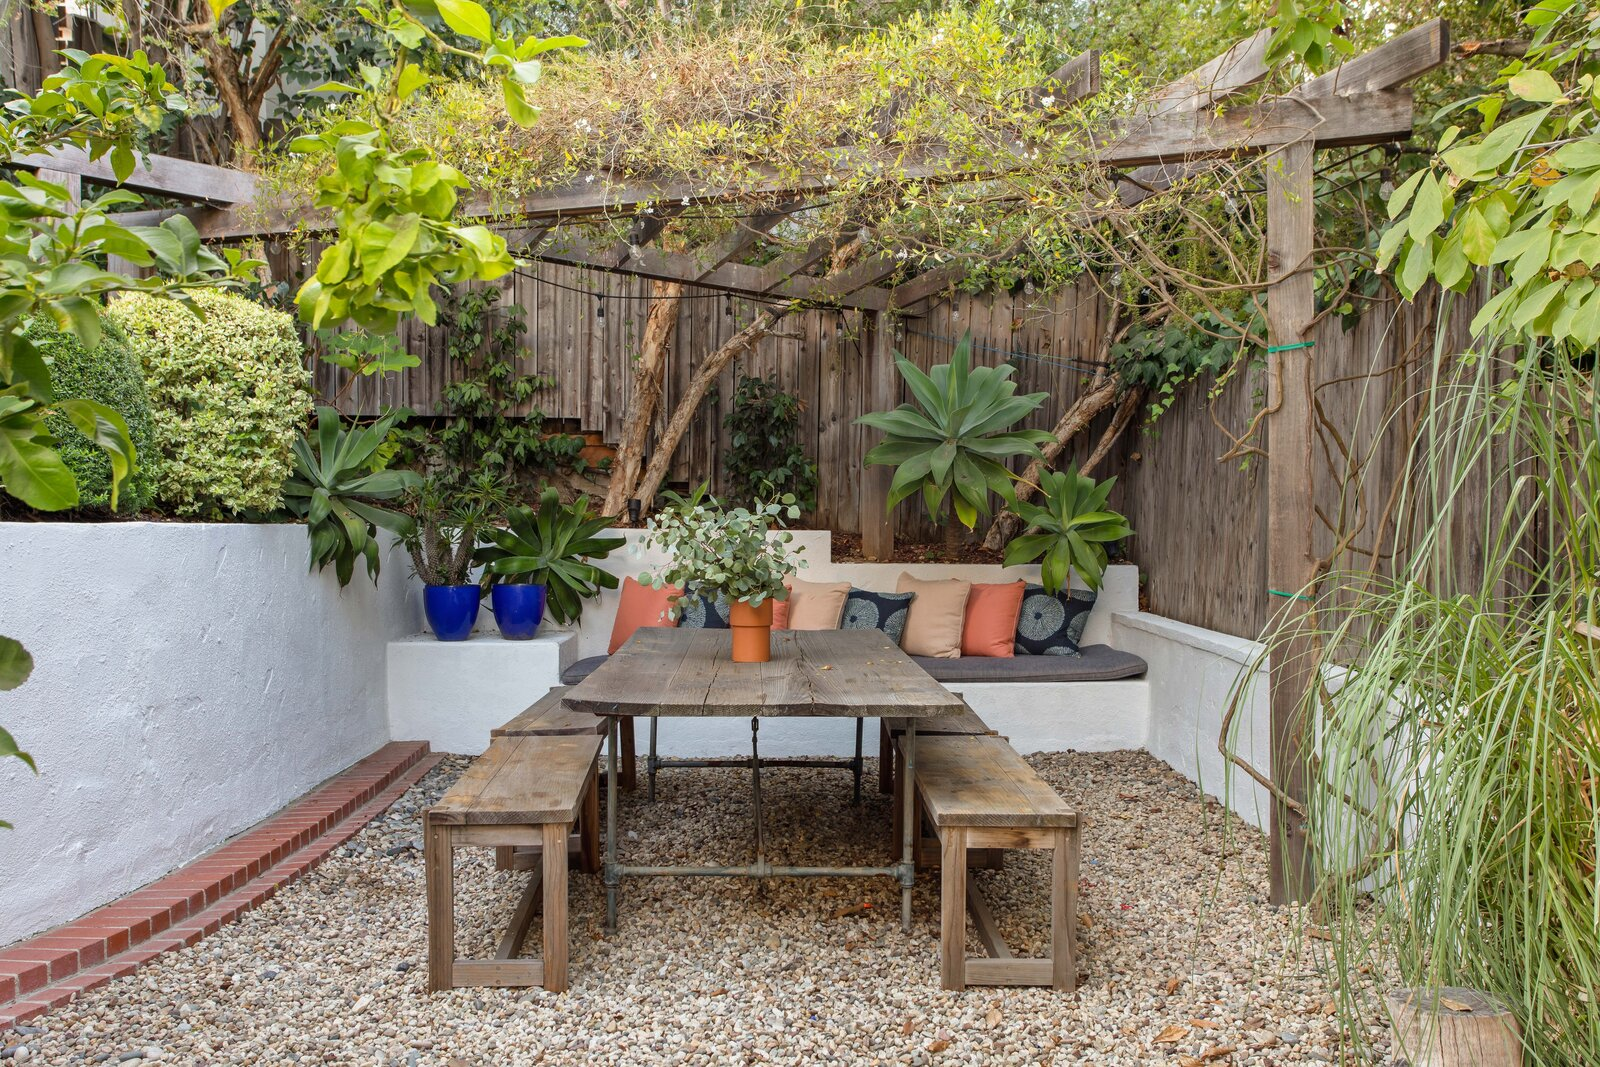 1920s Spanish Revival home outdoor dining area